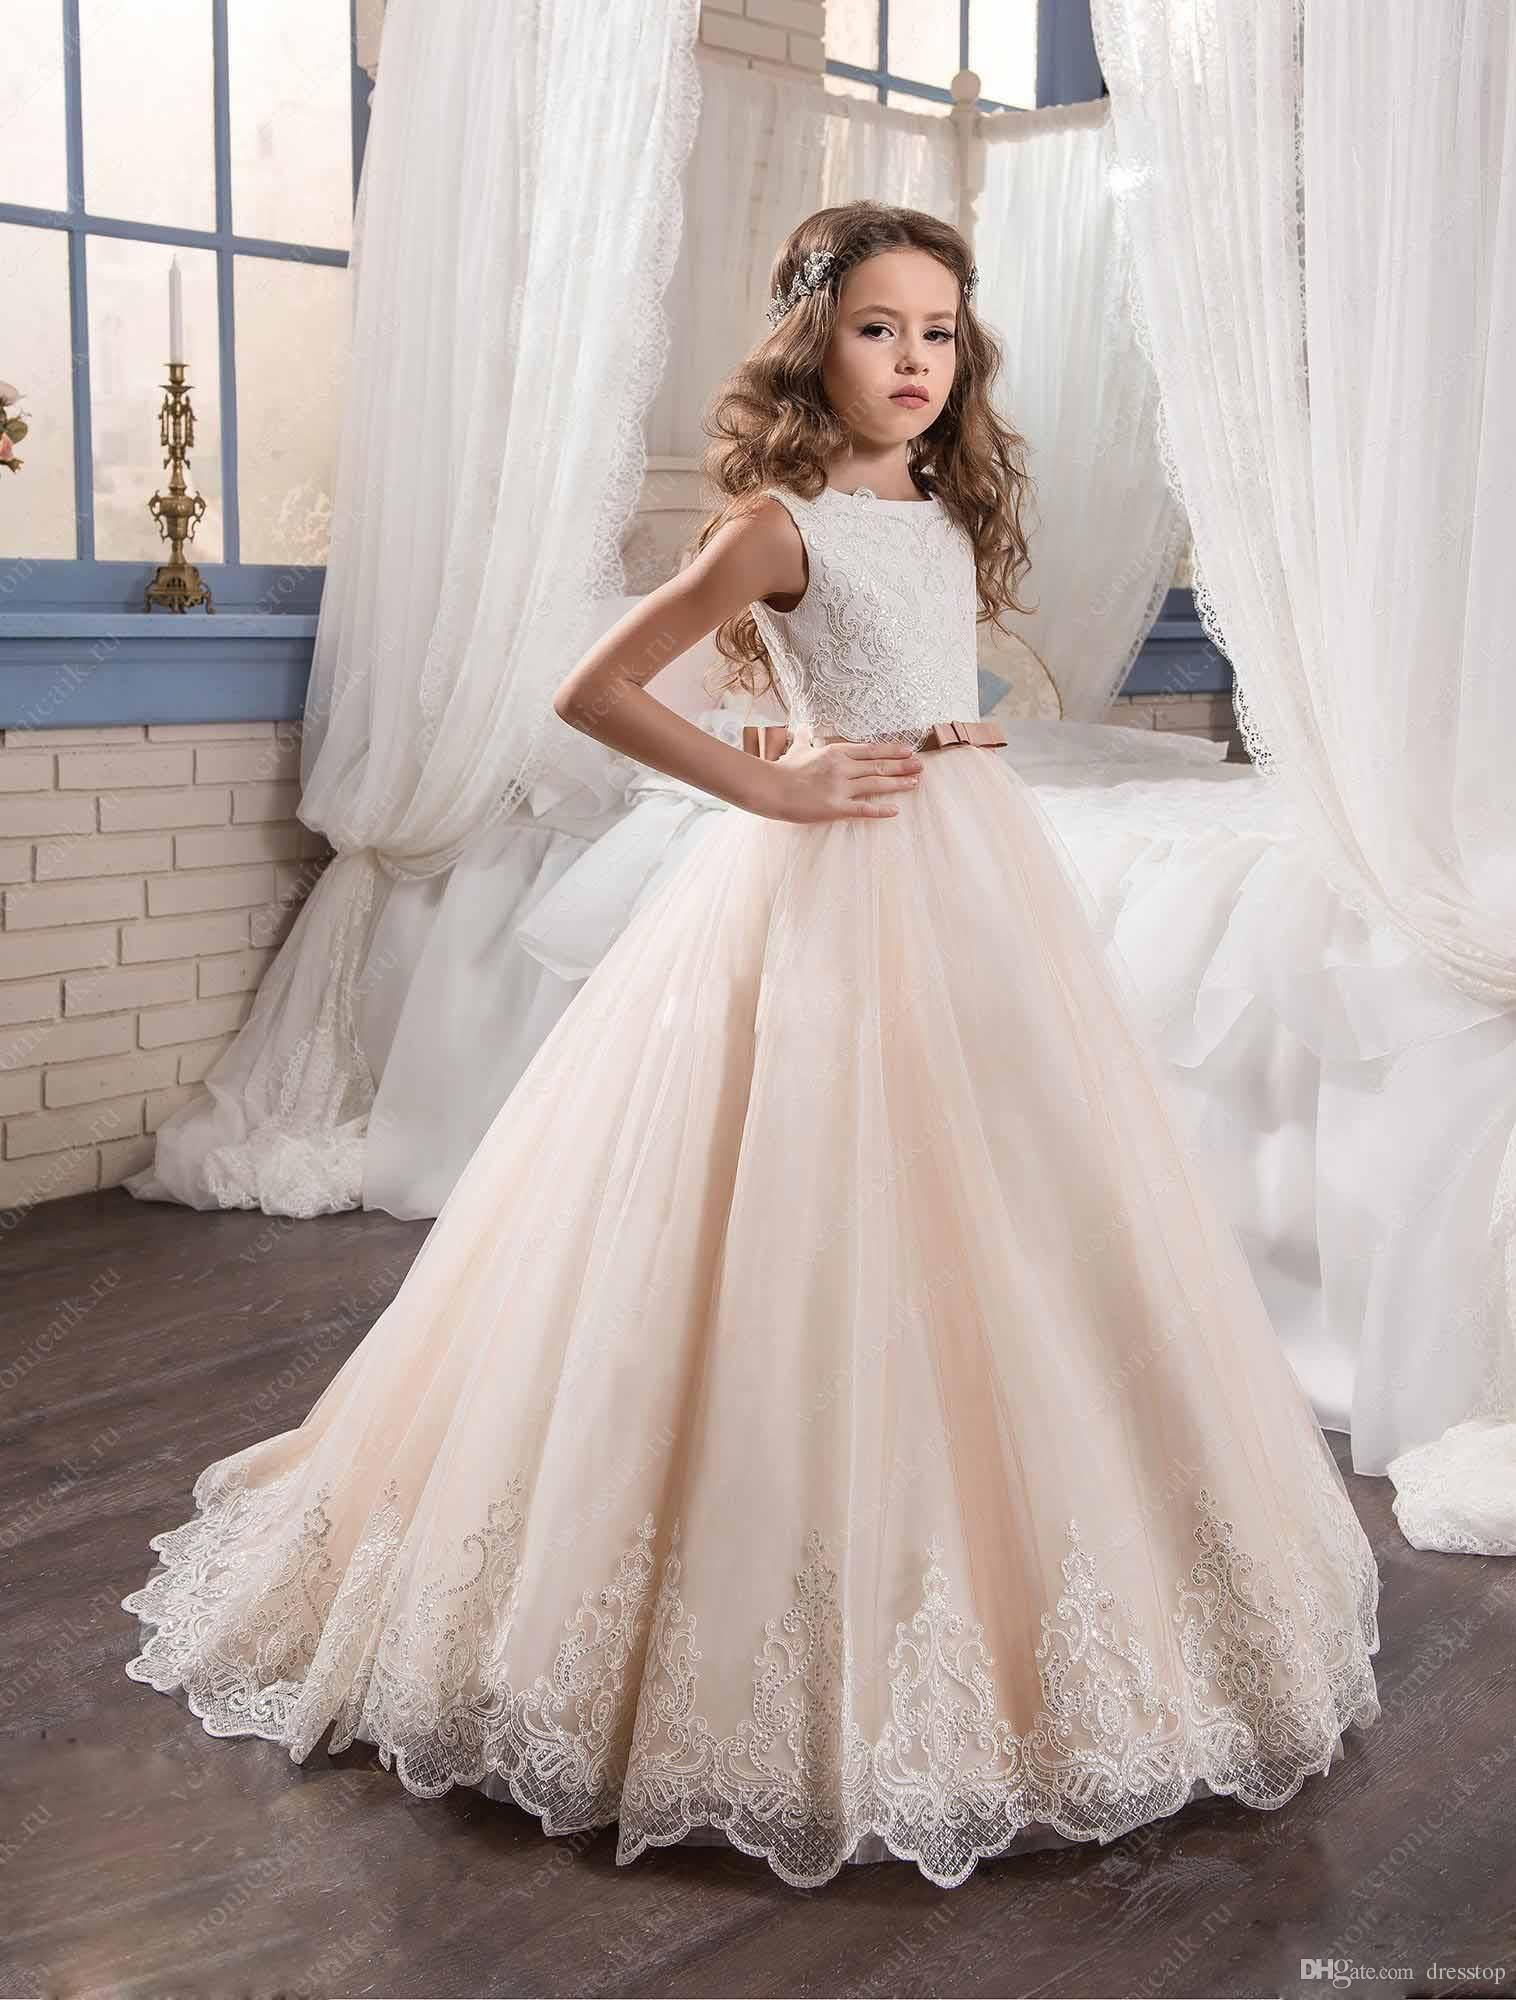 Lace dress gown  Cheap Lovely Lace Appliqued Flower Girl Dresses Special Occasion For